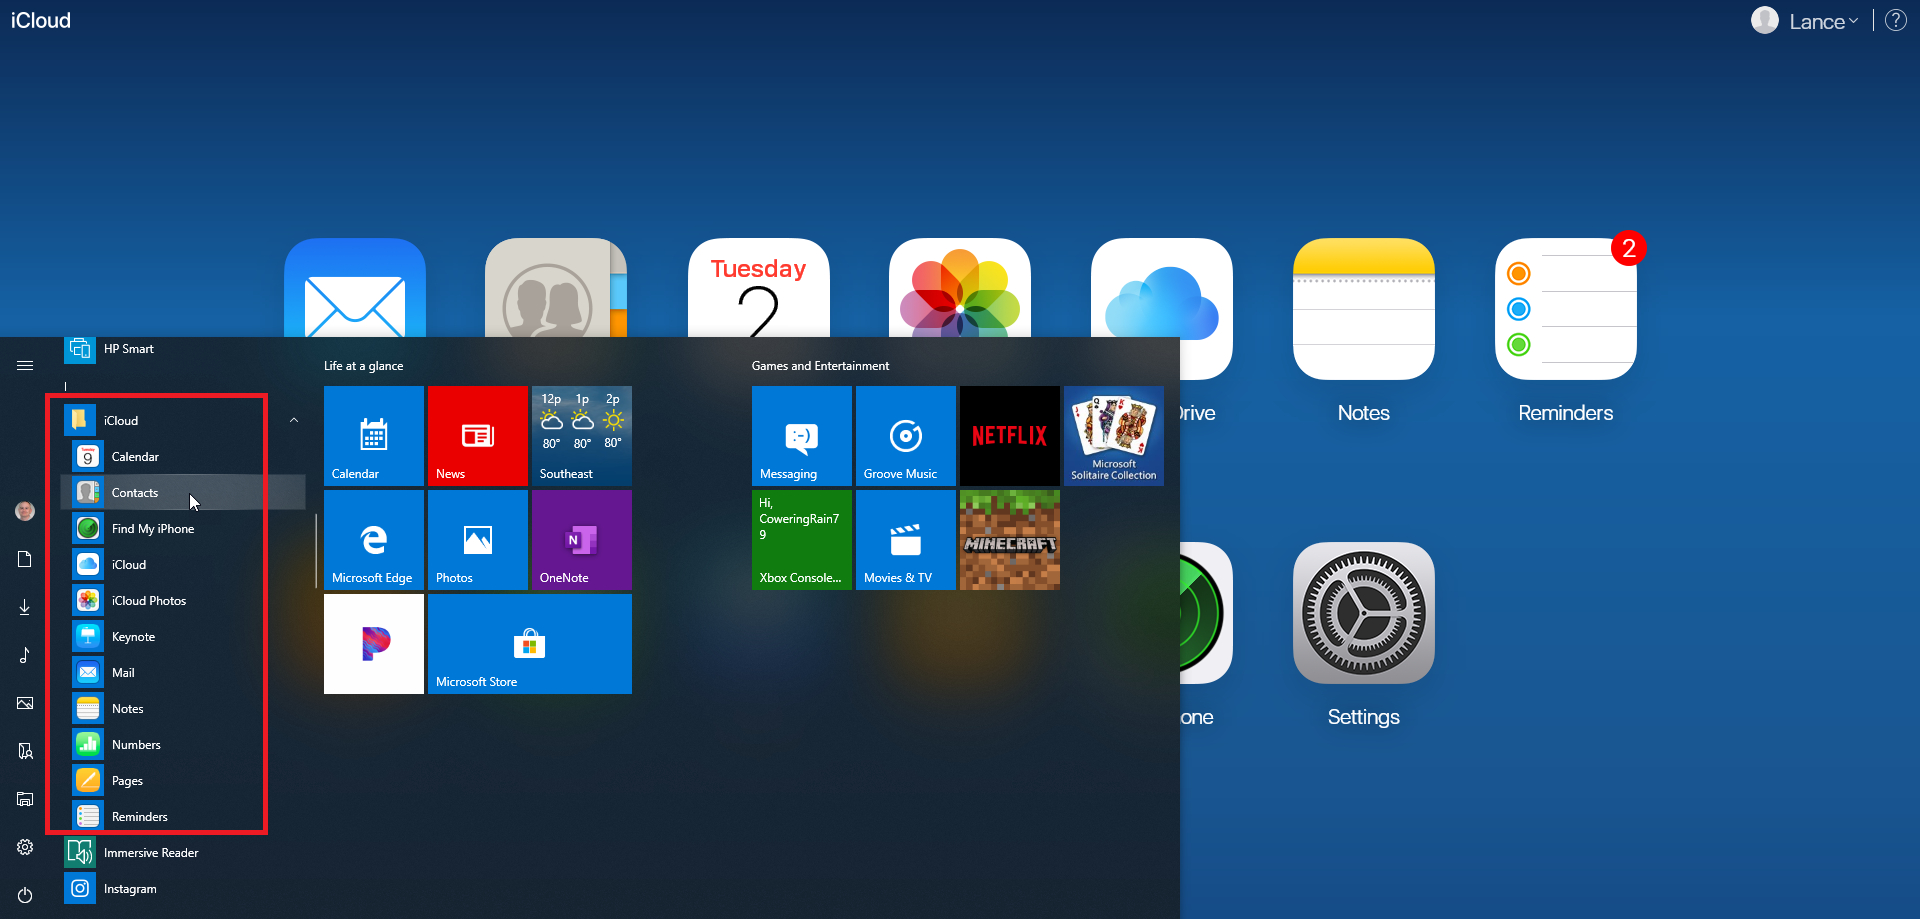 How To Use Icloud Online | Pcmag with Mail Icon Missing Iphone